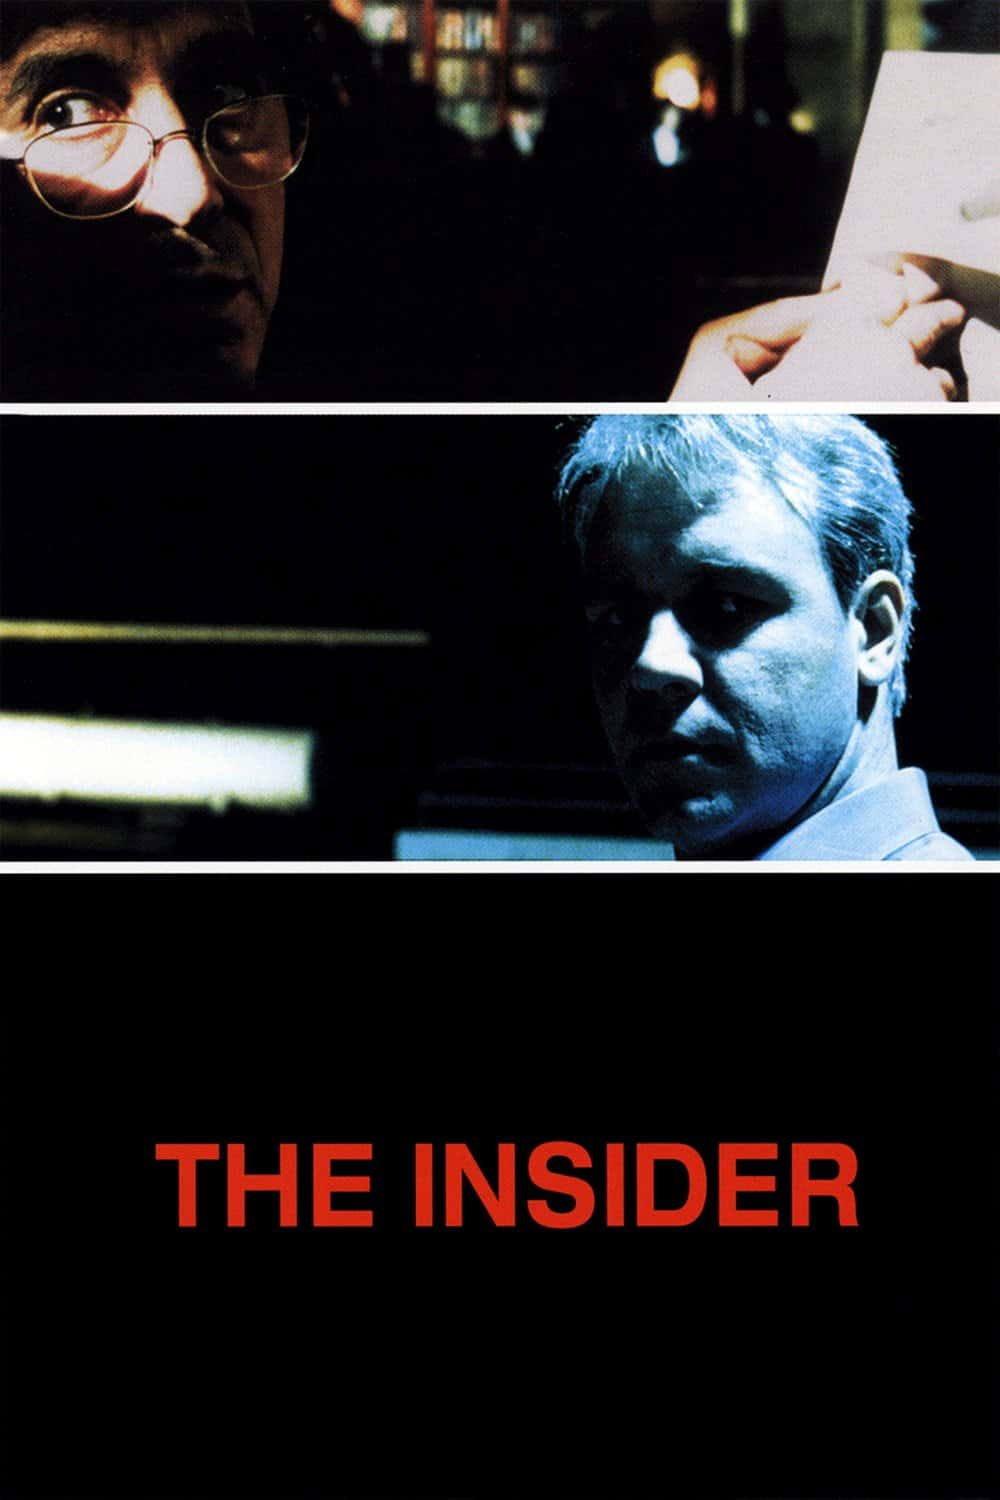 The Insider, 1999